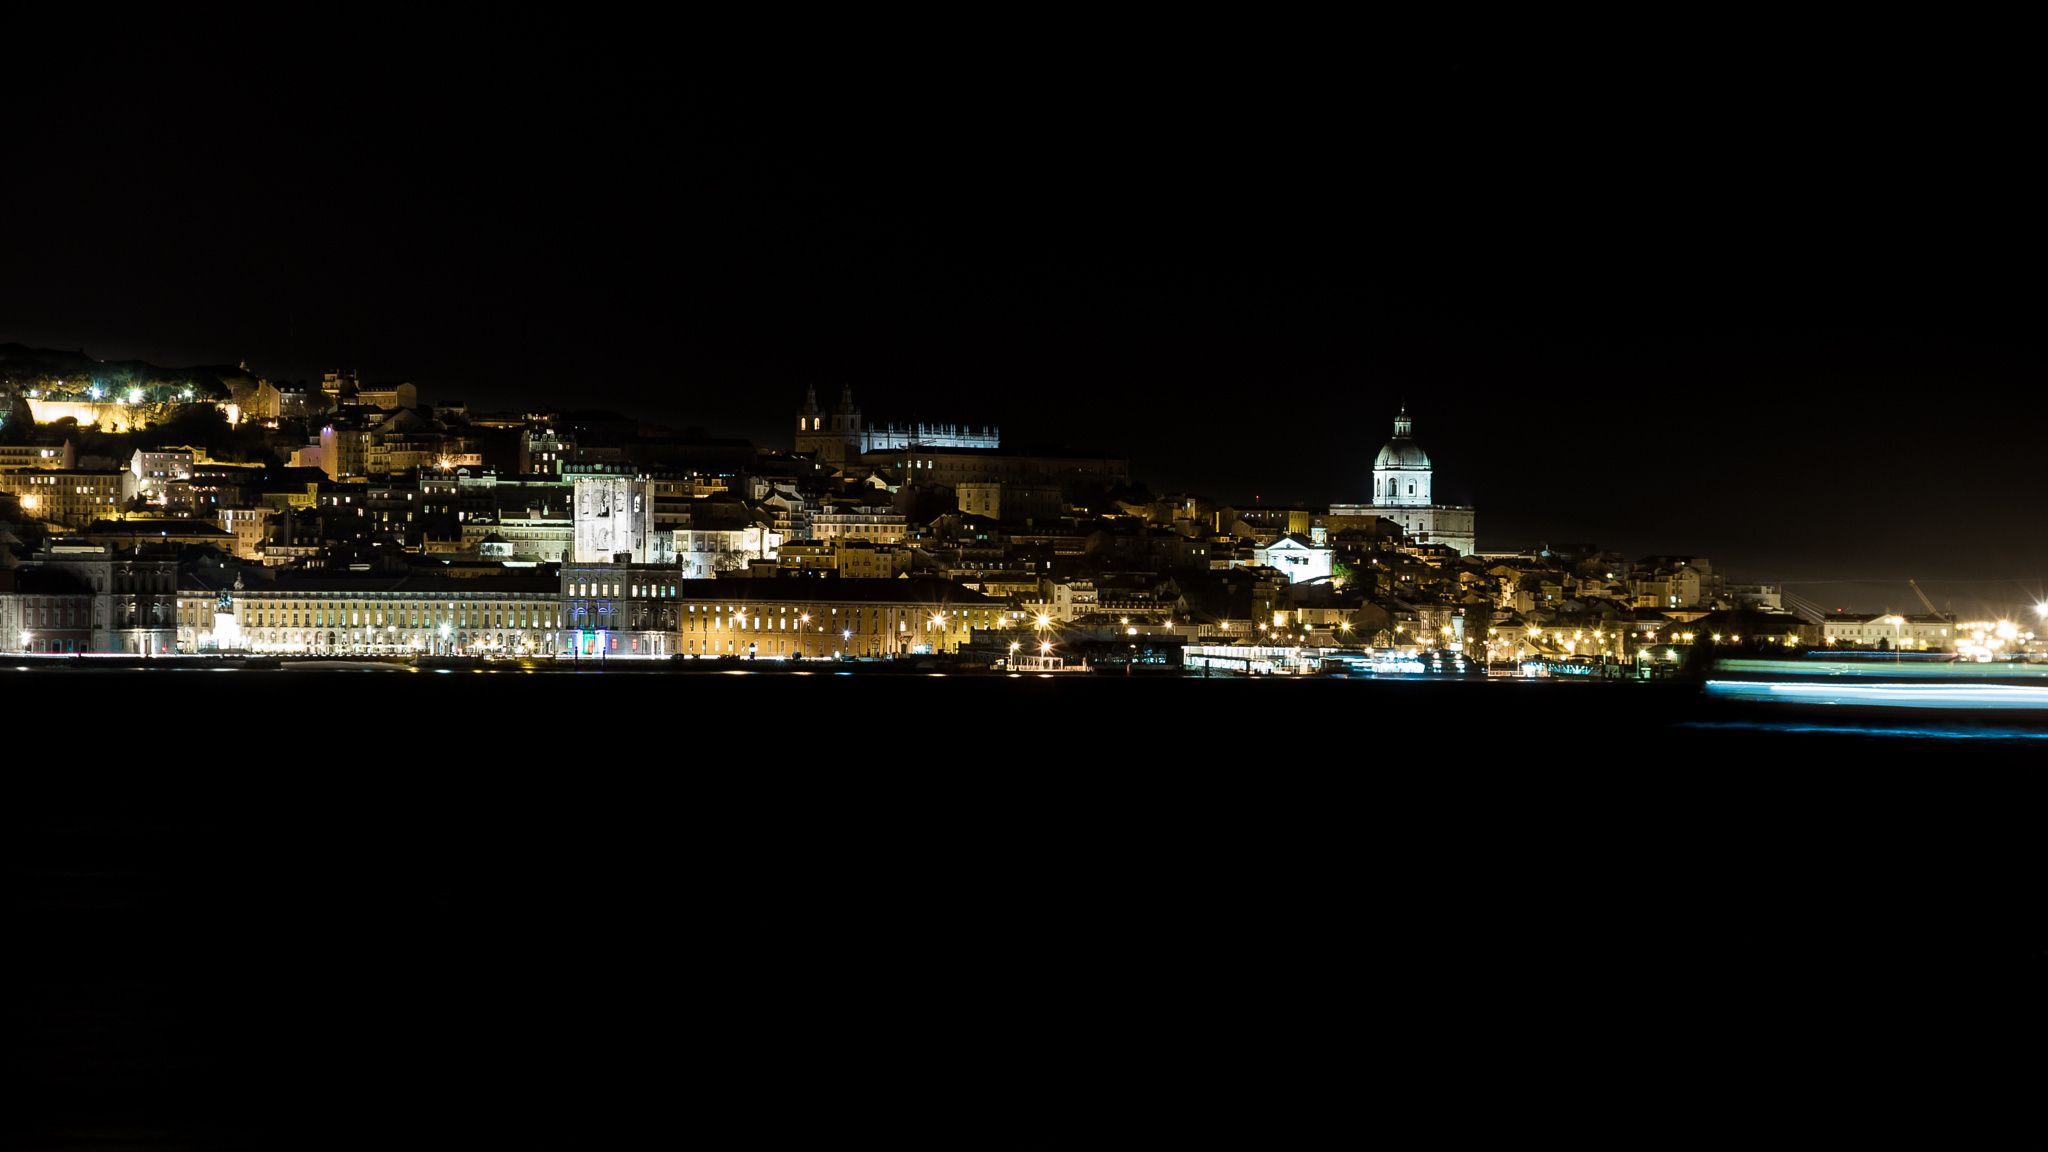 Lisbon in the night by Manuel Adrega on 500px